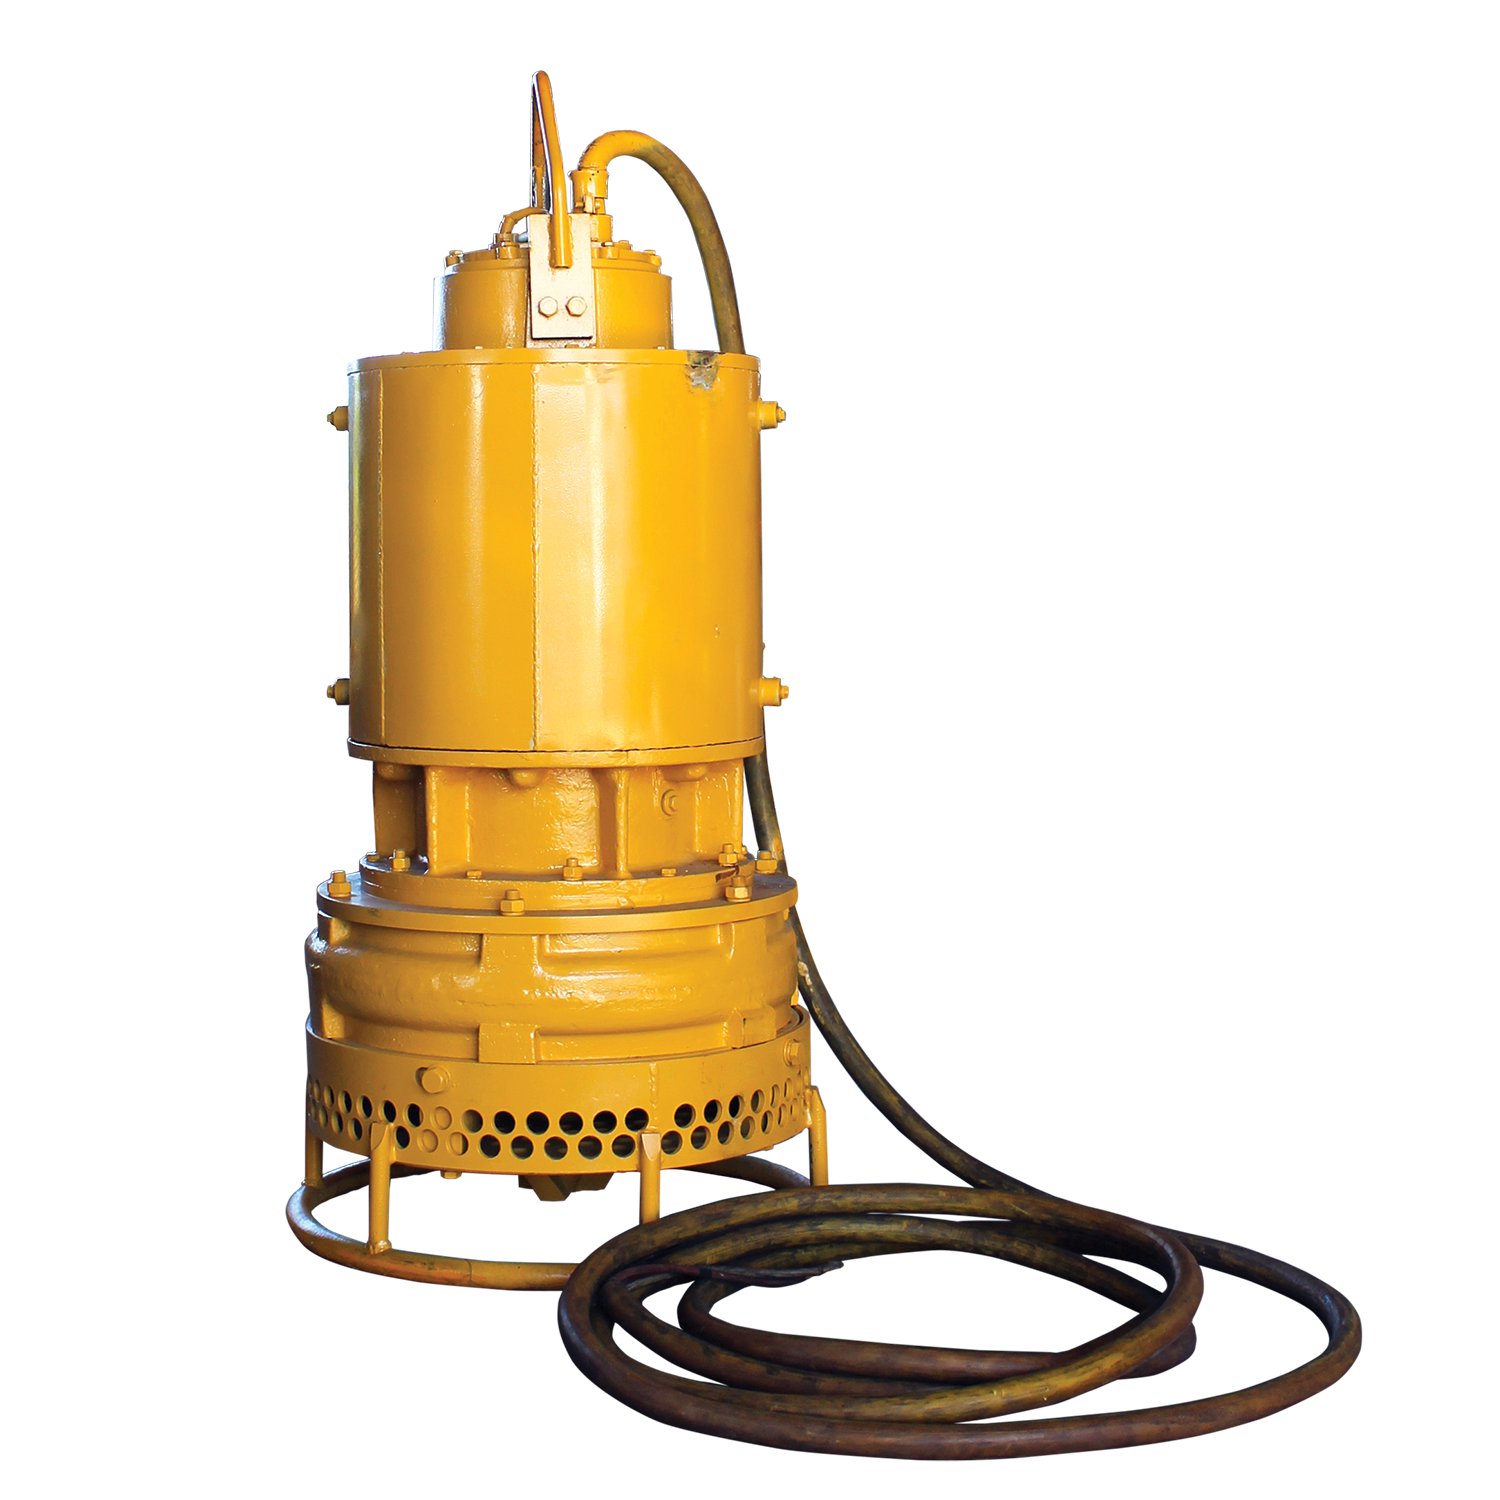 Stak-Price-Pumps-Electric-Submersible-Slurry-Pump